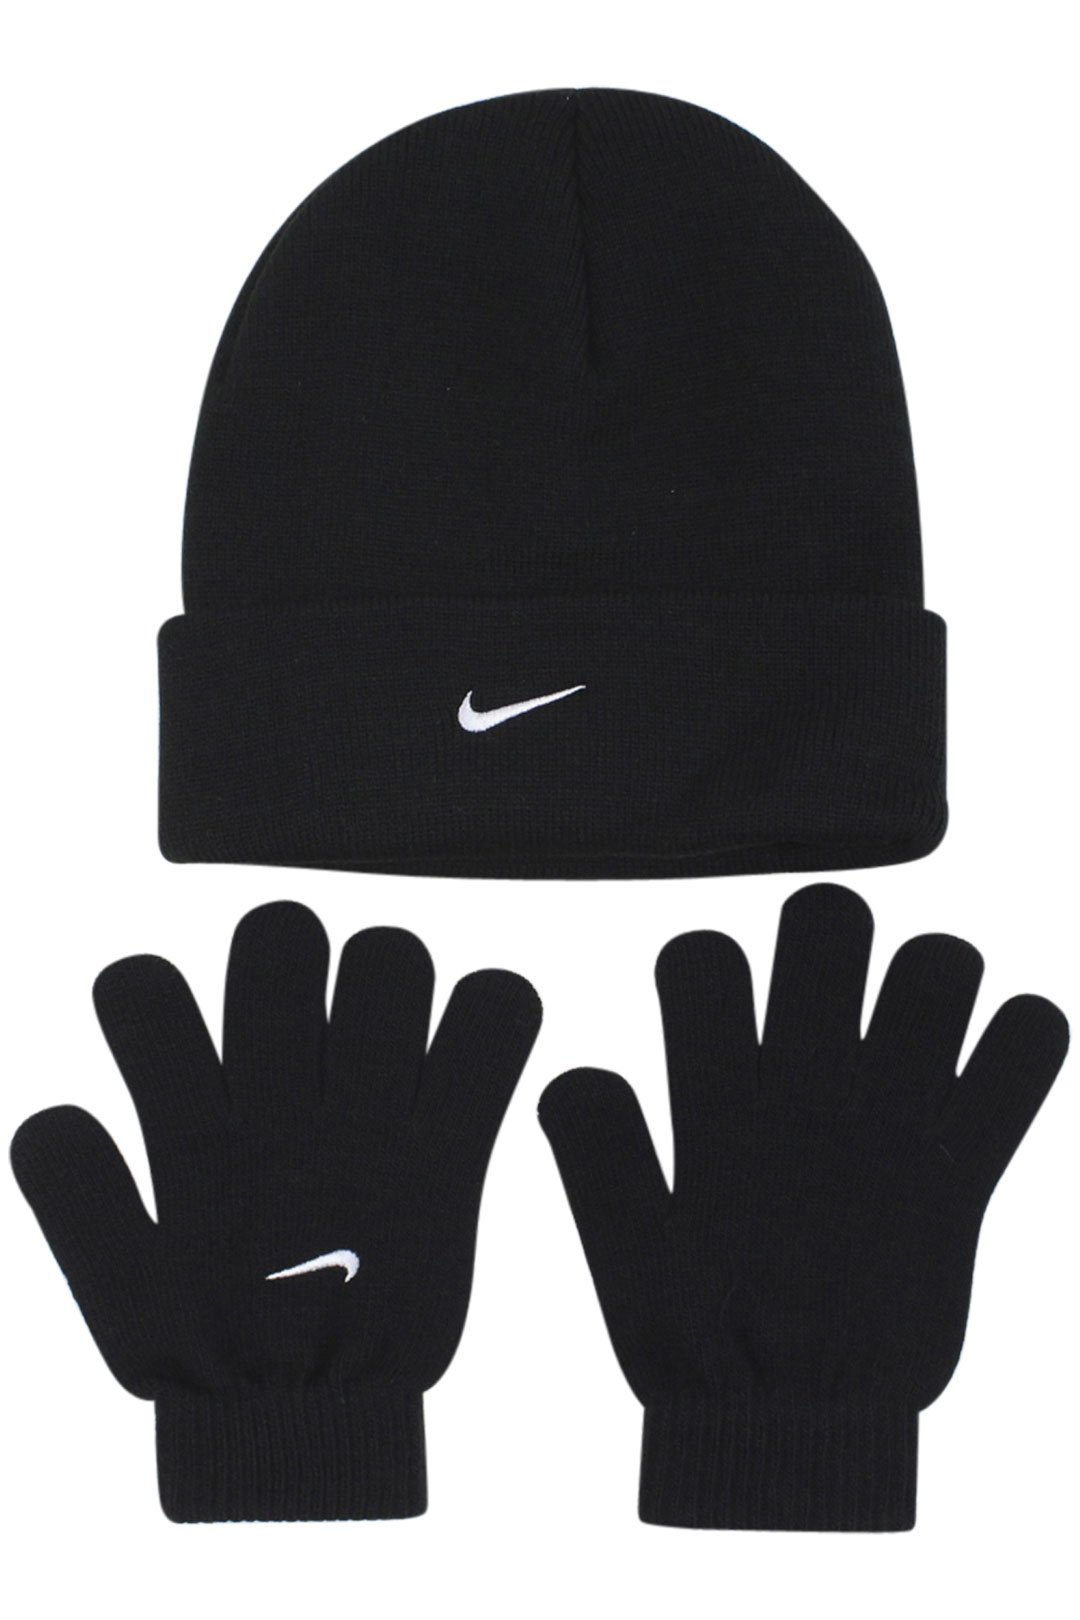 Nike Boys One Size 8/20 2 Piece Hat and Glove Set Black